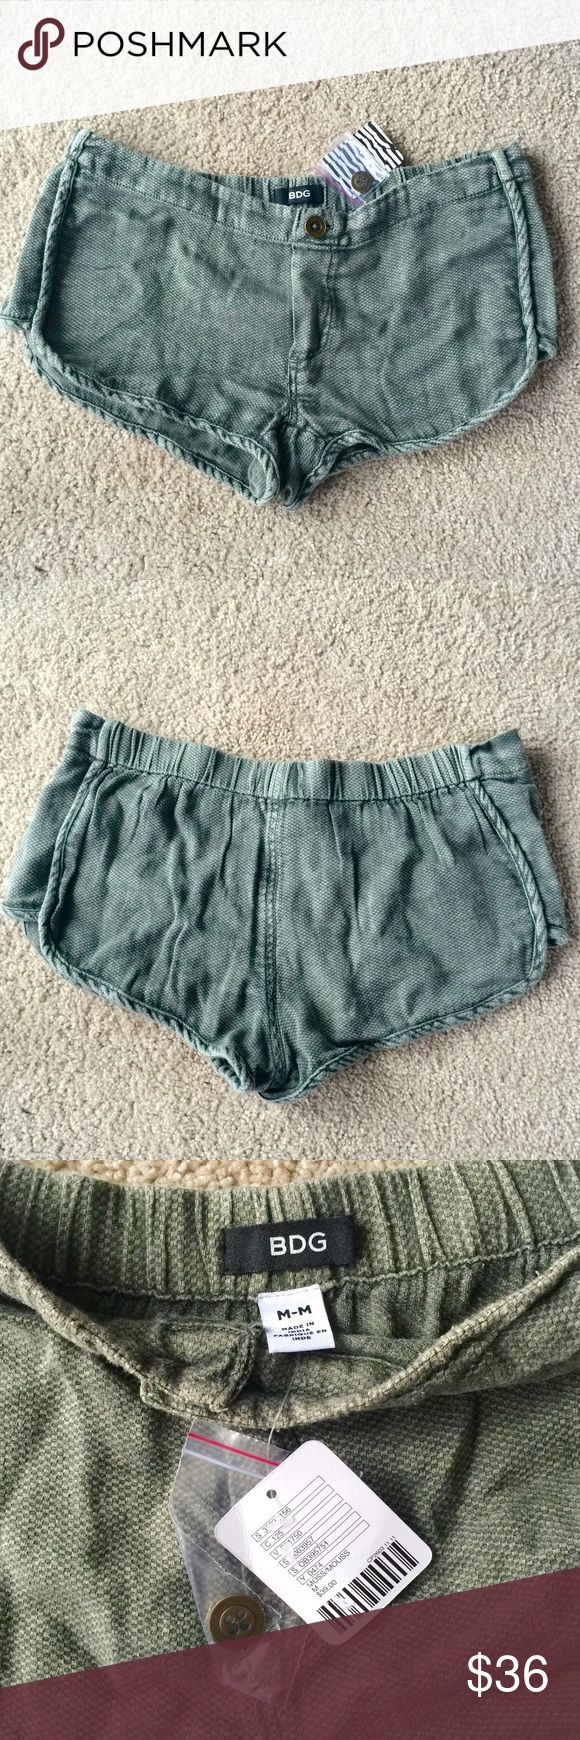 ❗️1 LEFT Urban Outfitters Olive Shorts NWT $39 ❗️1 LEFT Urban Outfitters Olive Shorts. NWT Size medium. Retails $39. Feel free to make an offer! New Year Cleanout Sale--I consider all reasonable offers on individual items & bundles. Current bundle deal ends today!;-) Urban Outfitters Shorts